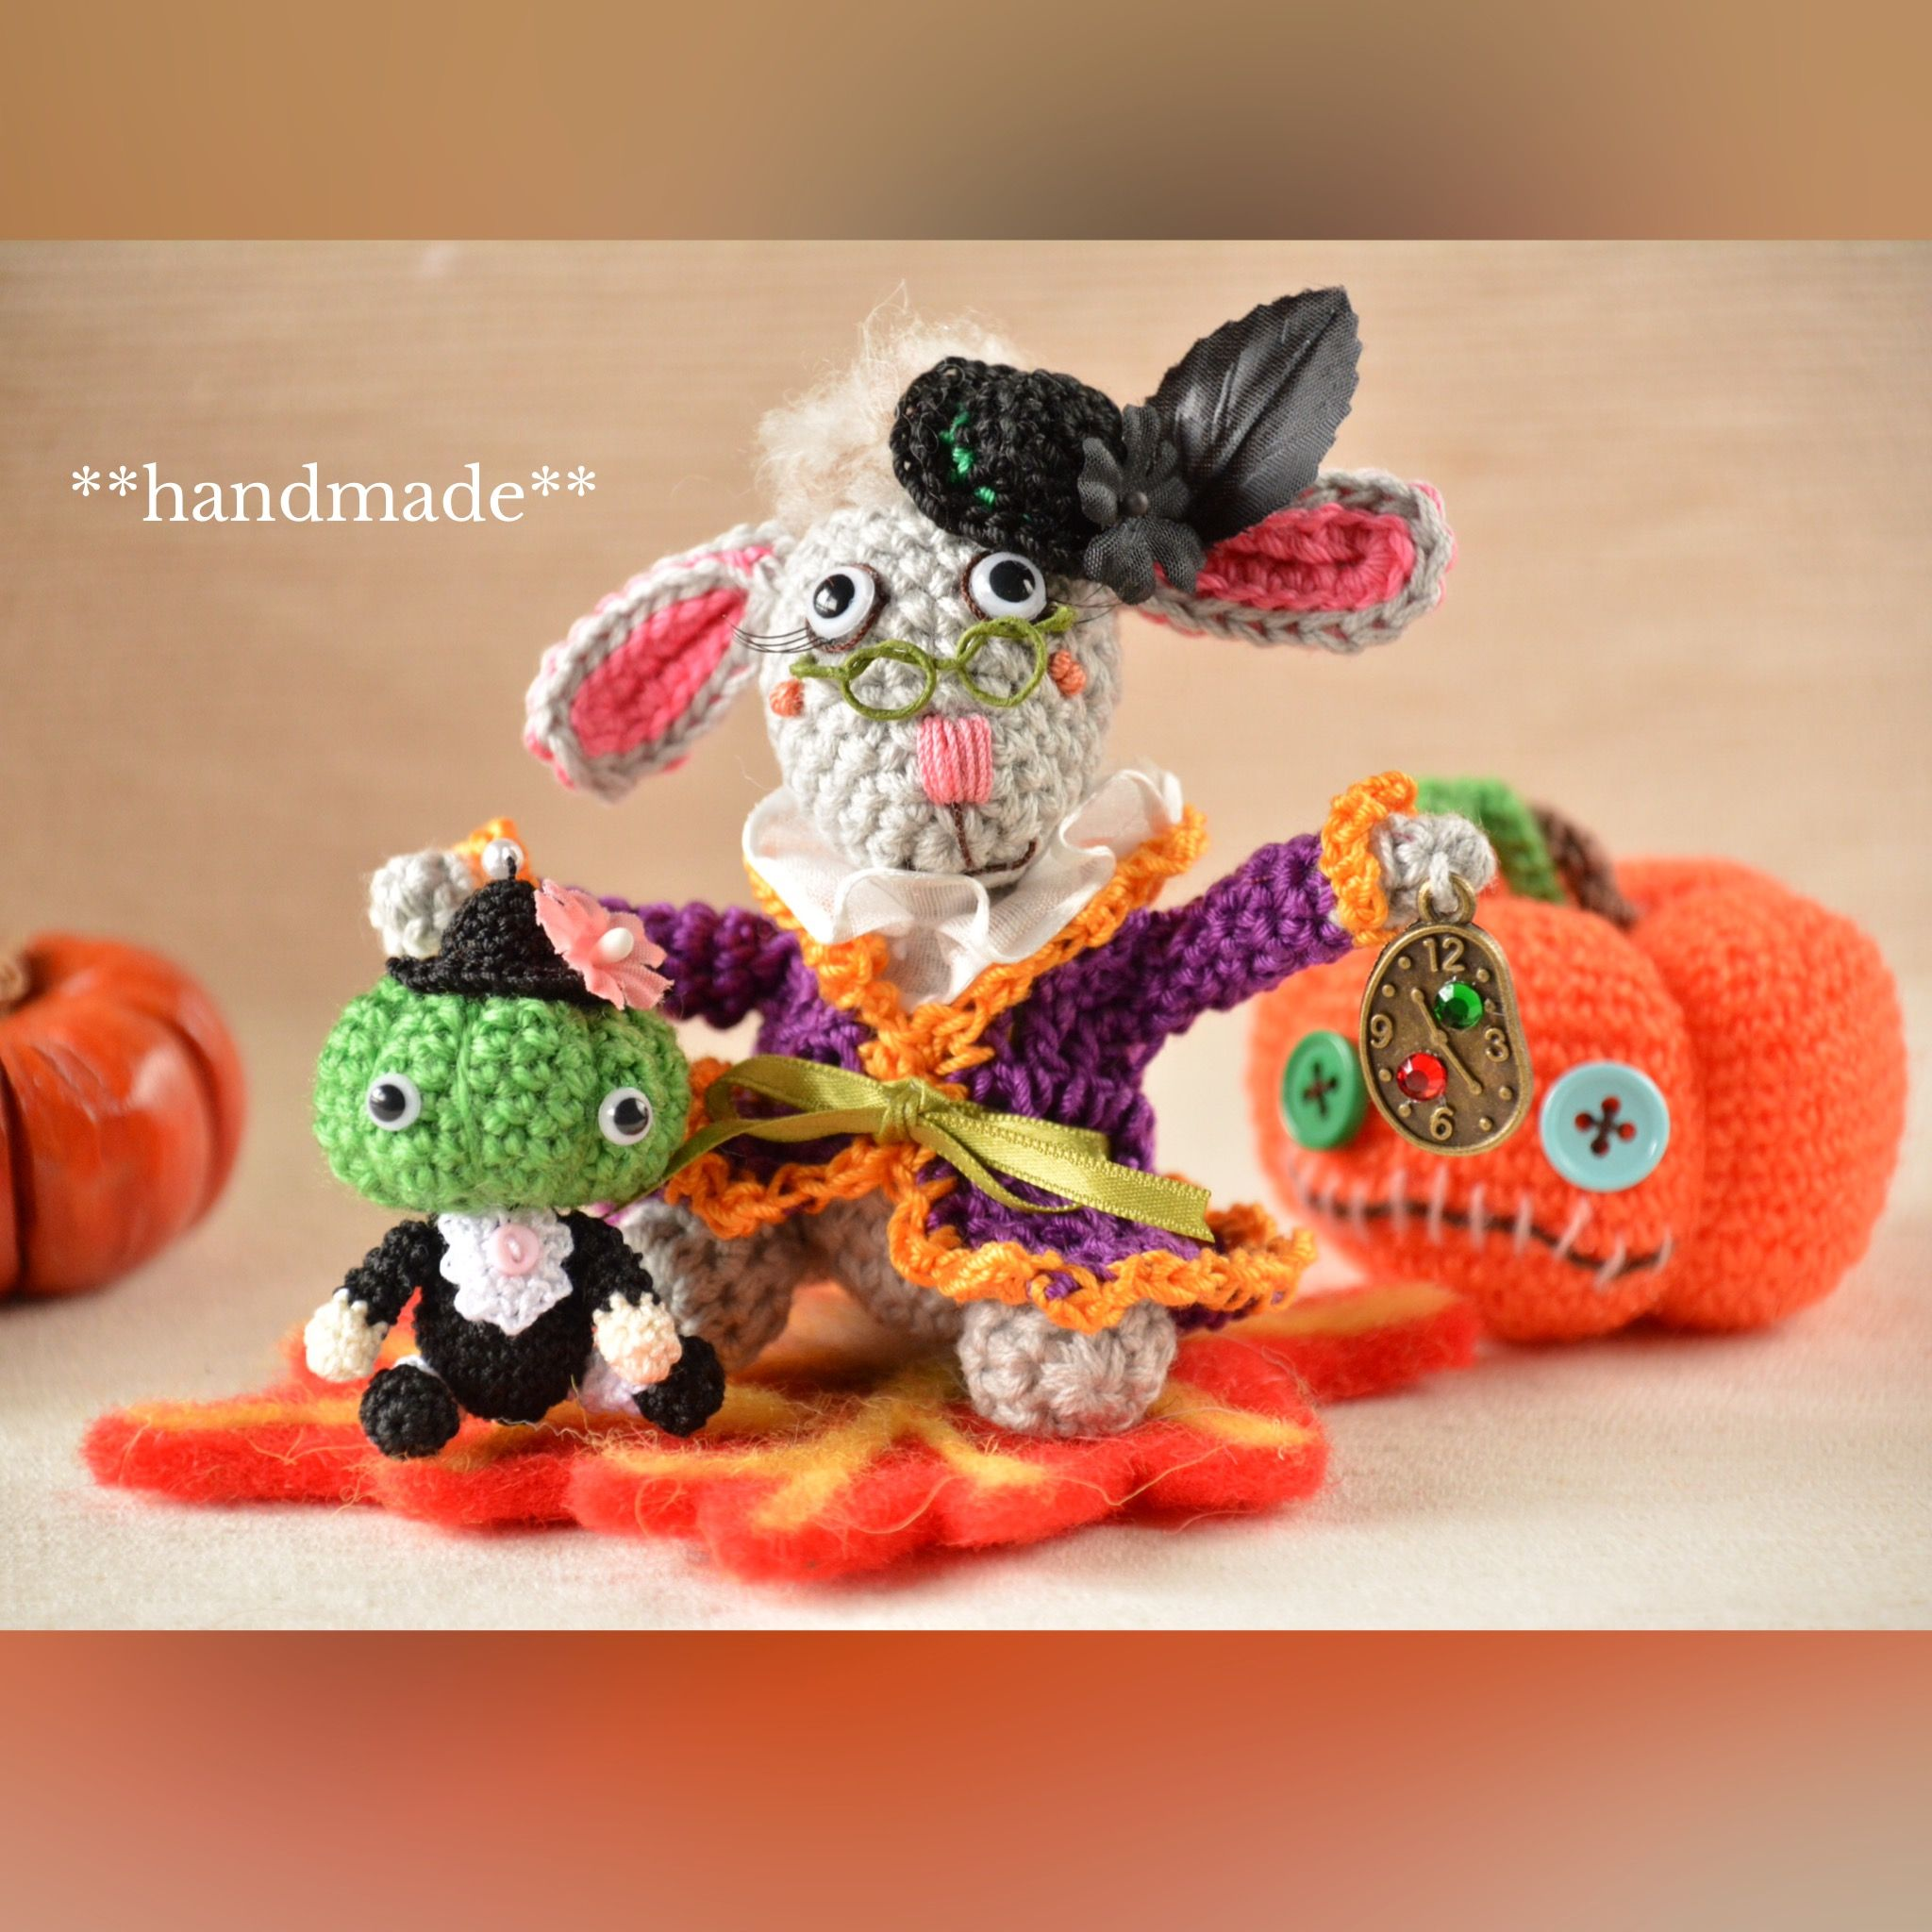 Pin by Grandma Wright on Halloween Pinterest Crochet fall - fall and halloween decorations